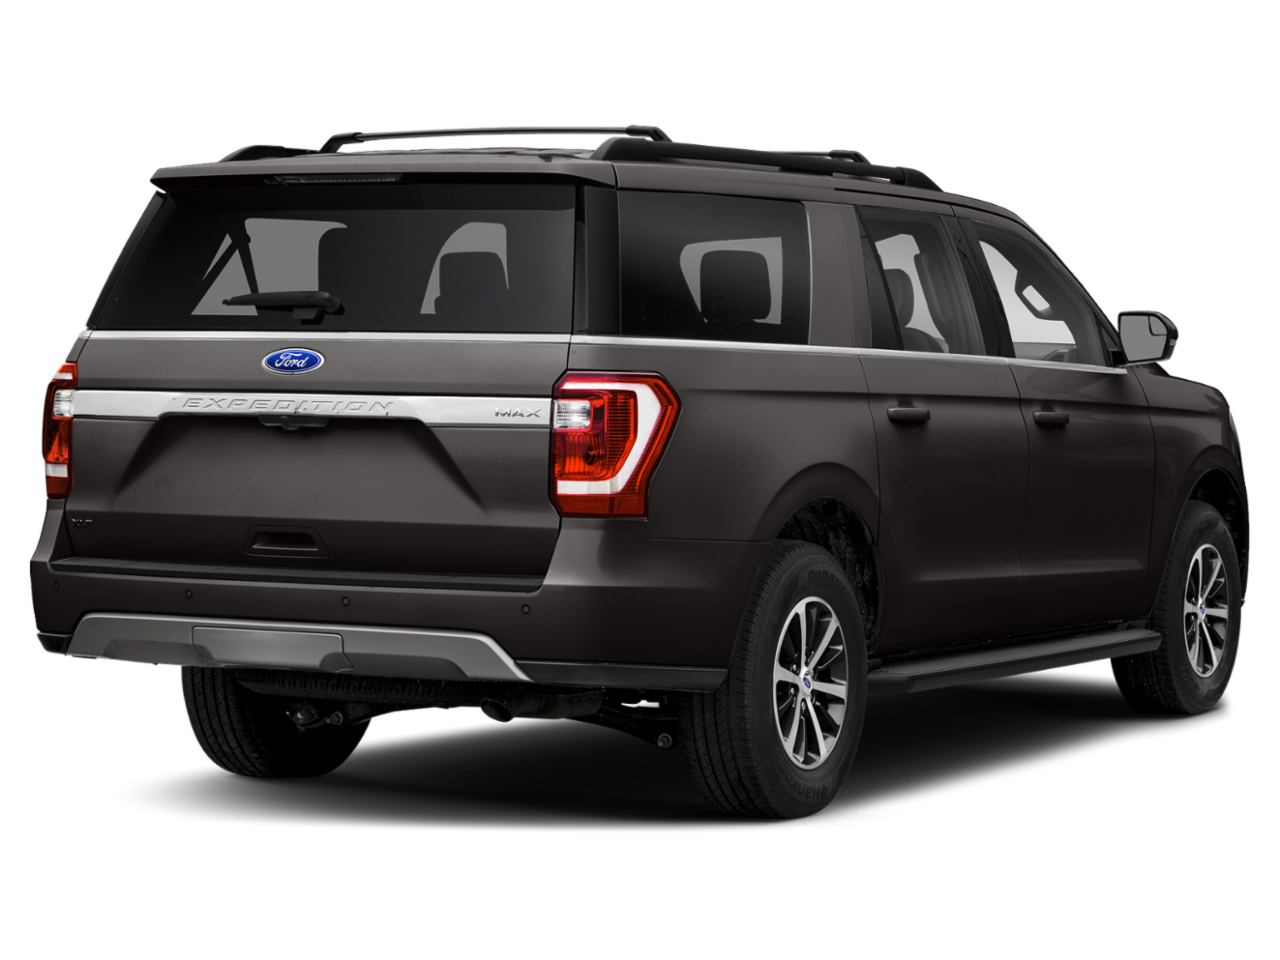 image-1 2020 Ford EXPEDITION